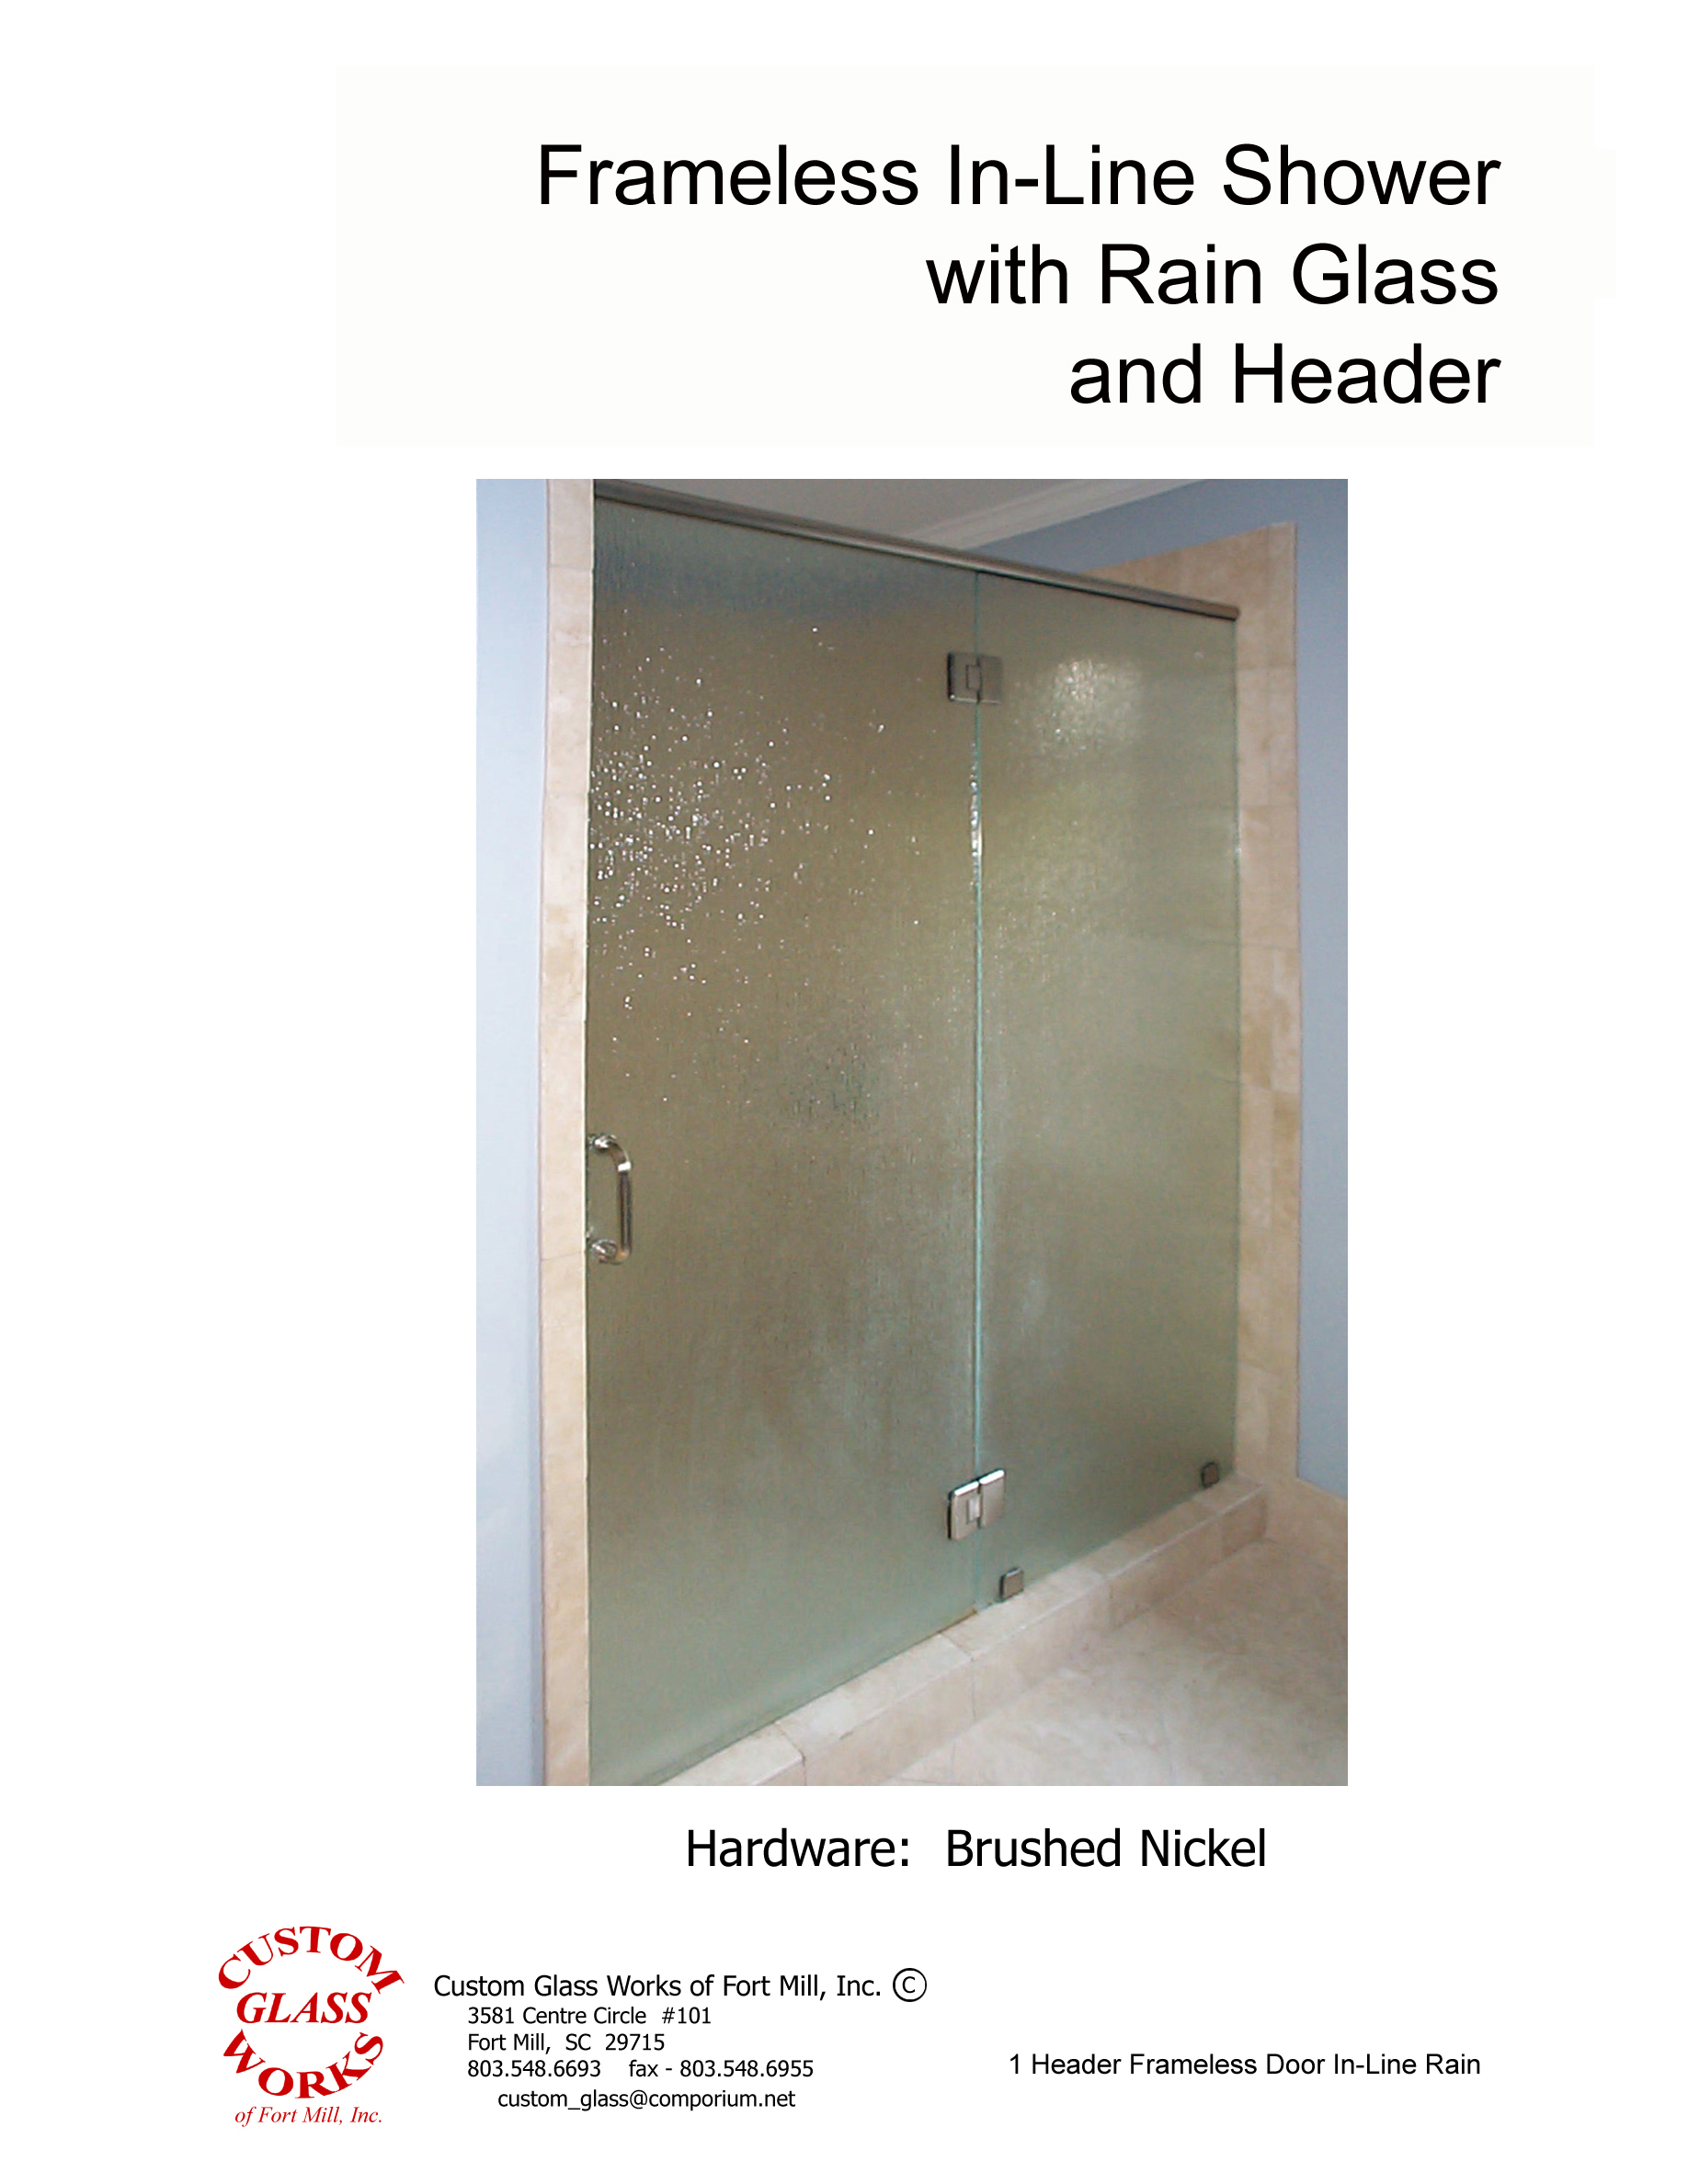 Frameless Header Door In-Line Rain